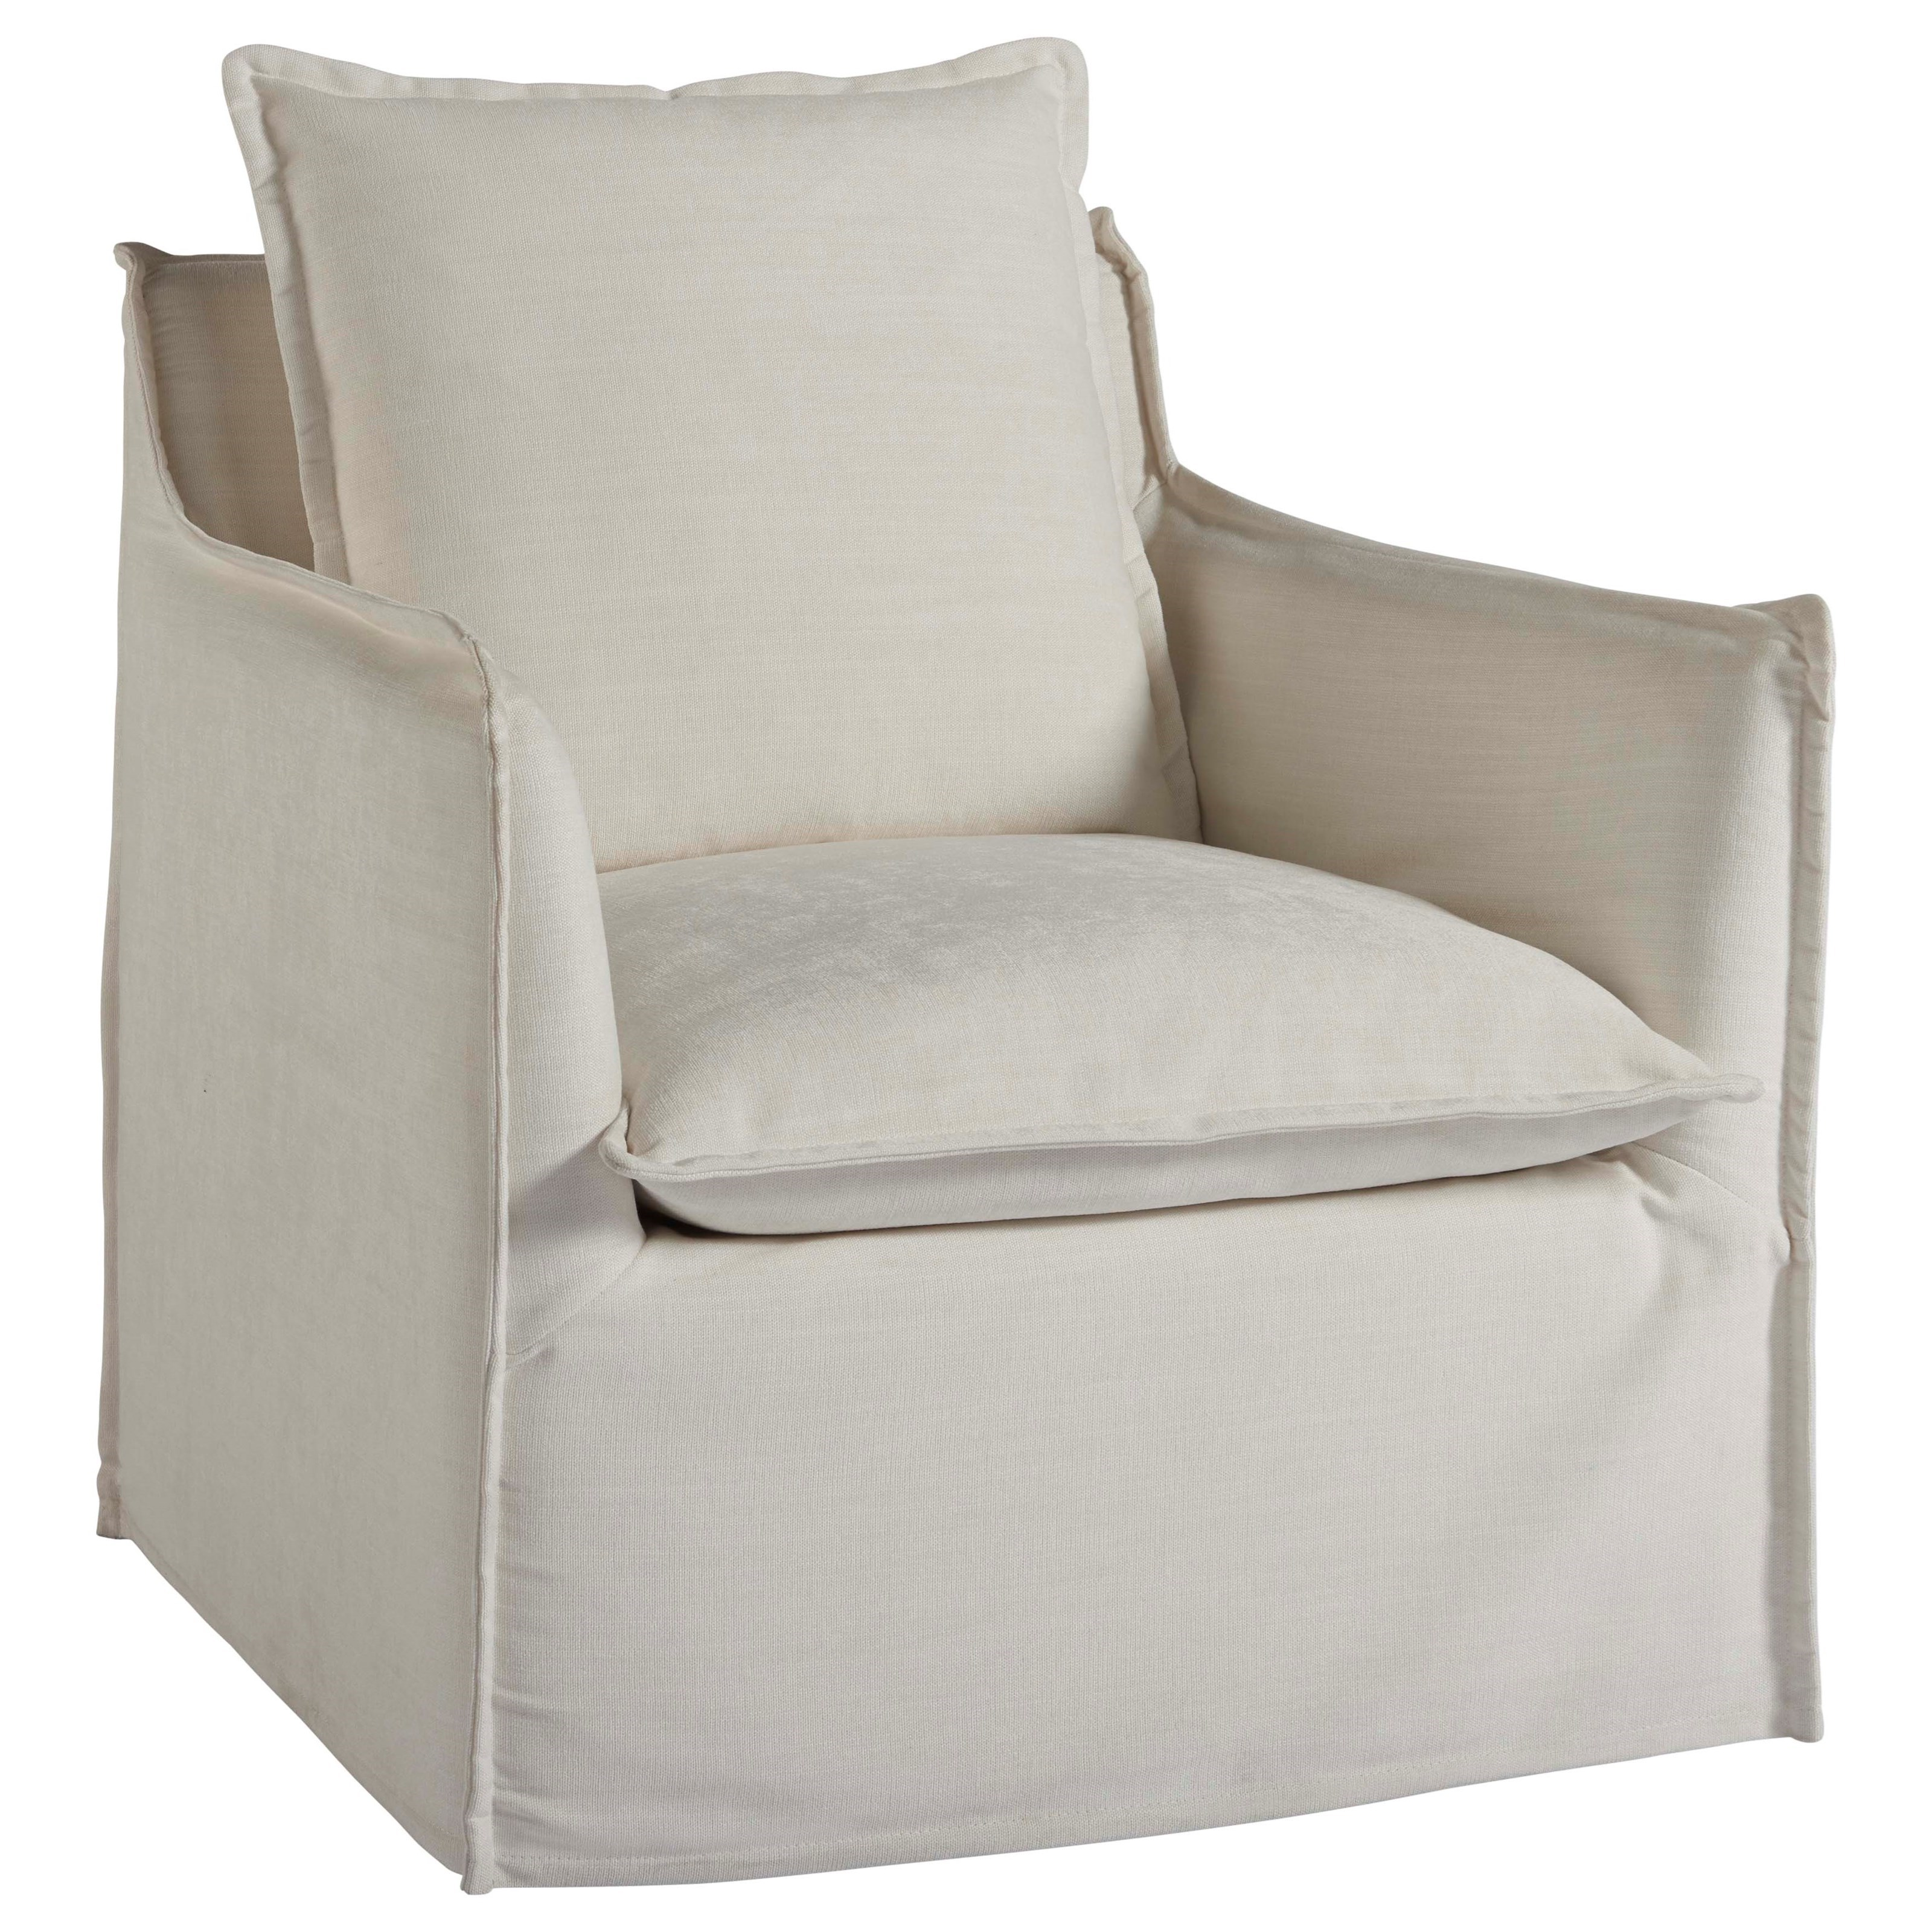 Coastal Living Home - Escape Siesta Key Swivel Chair by O'Connor Designs at Sprintz Furniture